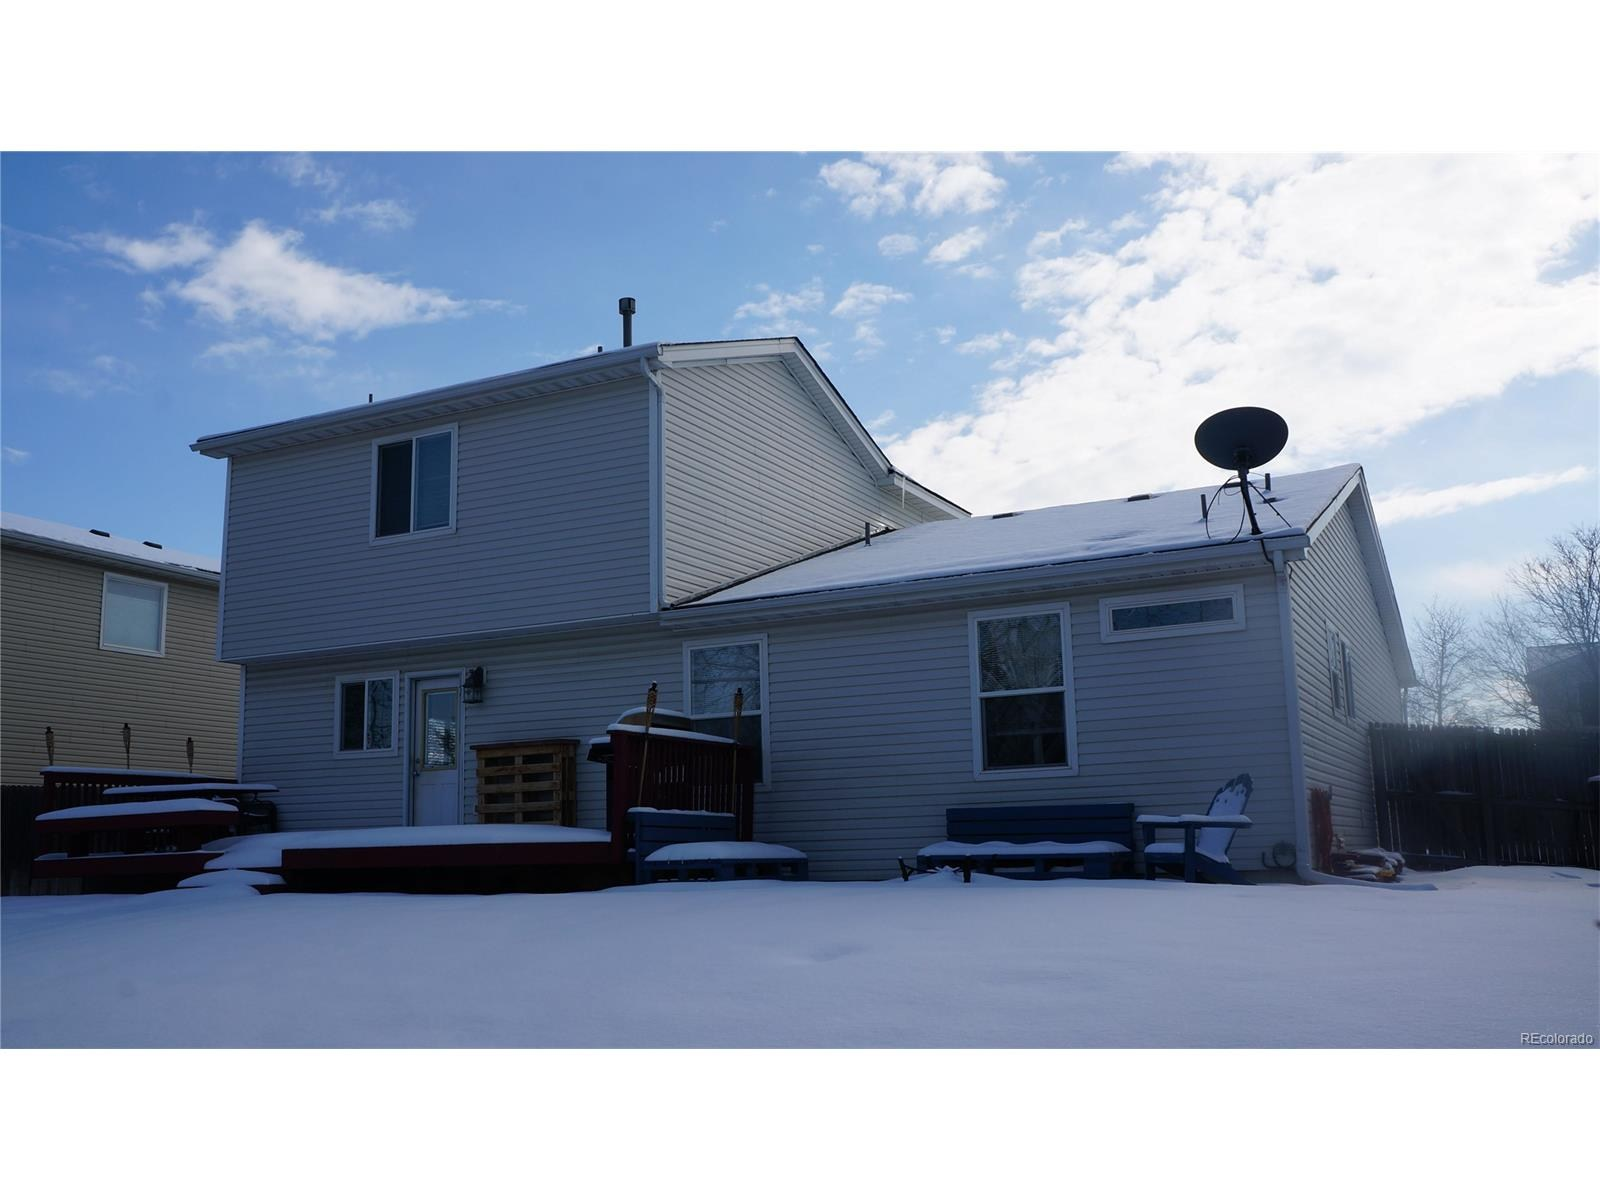 MLS# 8850556 - 3 - 2245 E 127th Place, Thornton, CO 80241